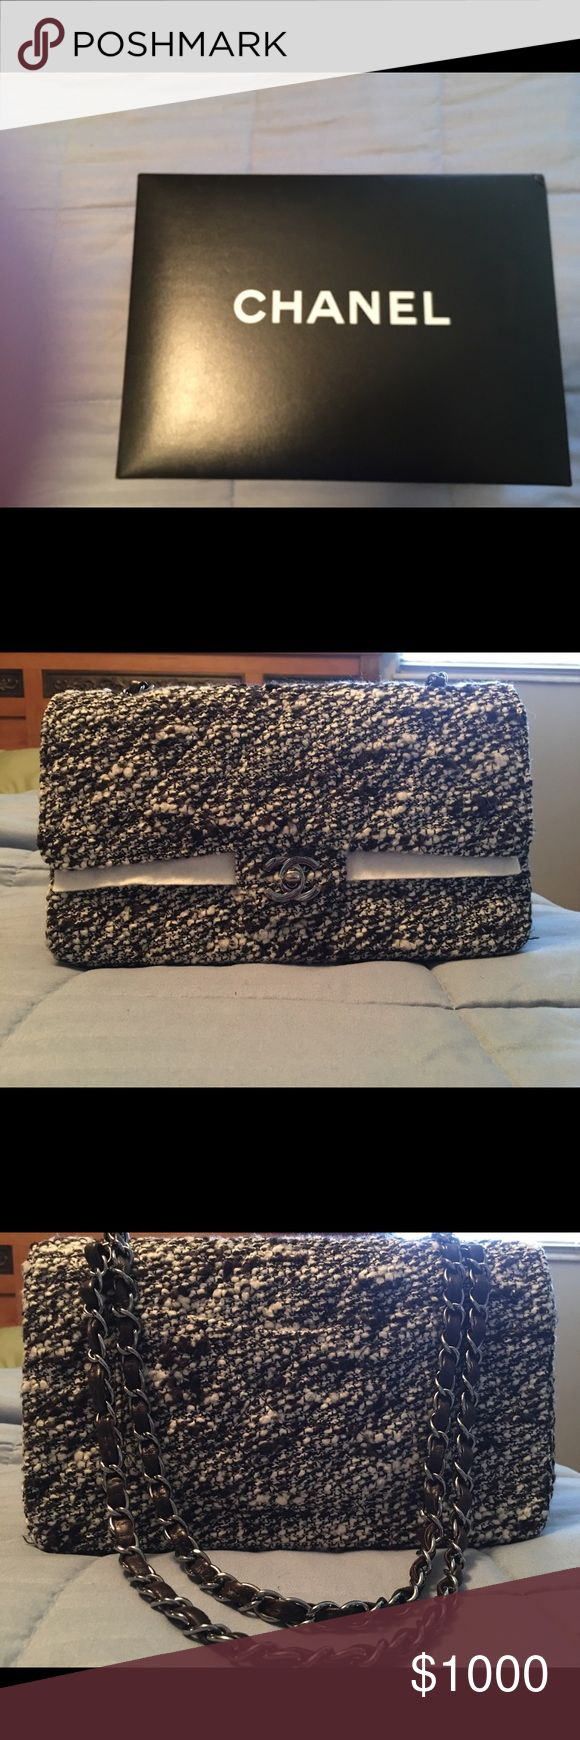 Chanel Double Flap Tweed Bag I have a brand new vintage Chanel double flap Tweed bag in cream and chocolate. The bag is gorgeous. It is the classic 6.25 Tweed bag. CHANEL Bags Shoulder Bags